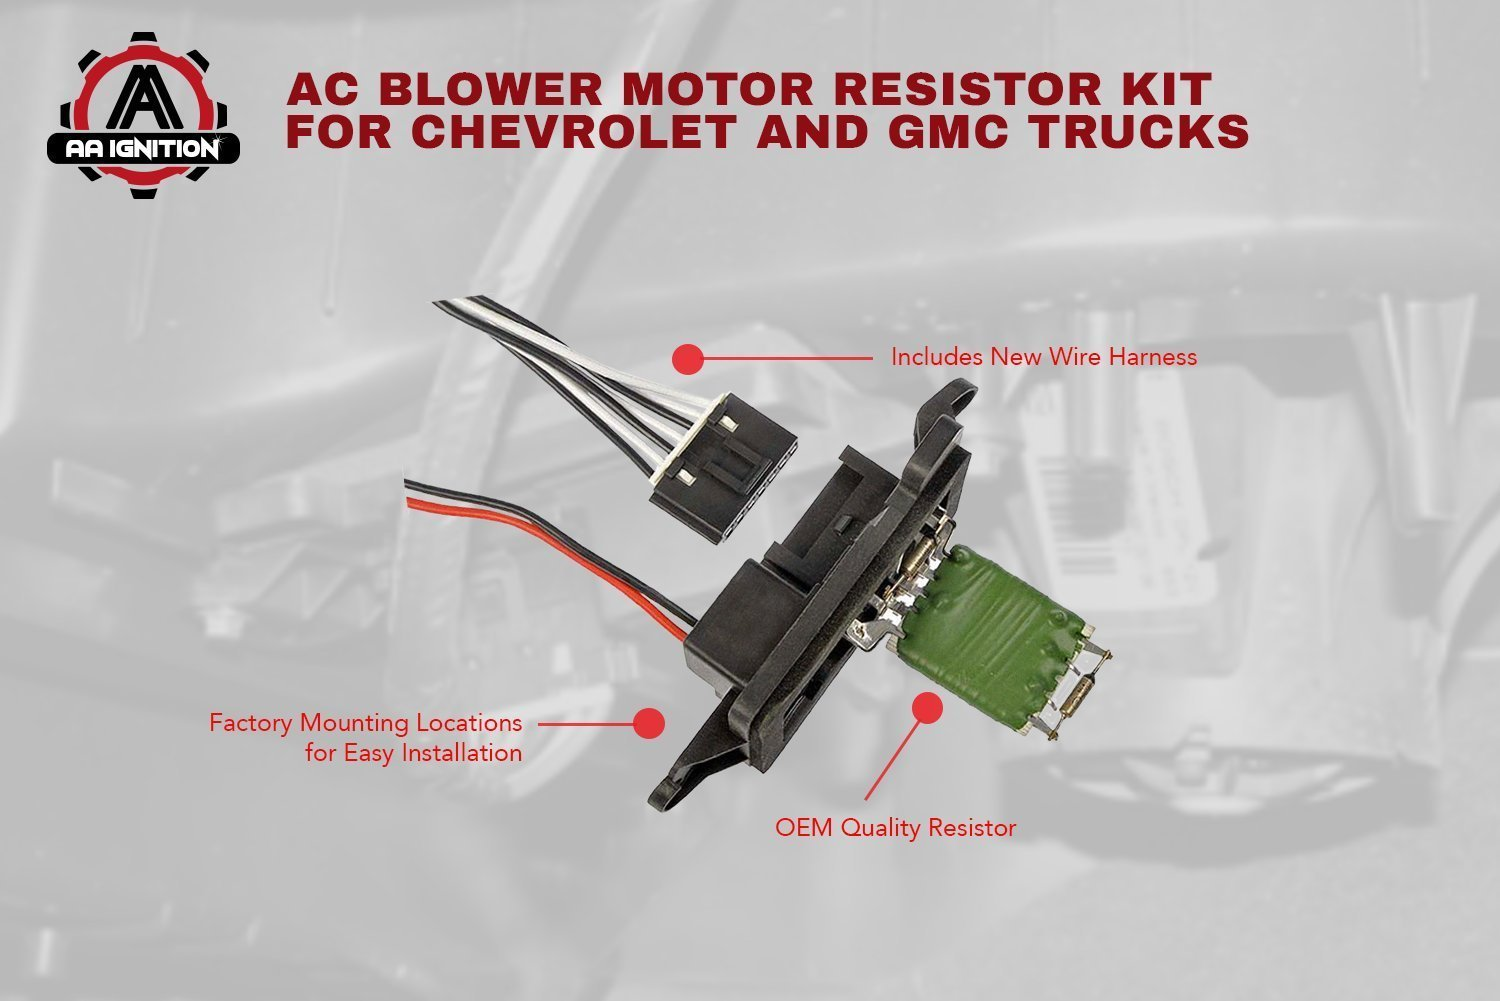 Ac Blower Motor Resistor Kit With Harness Replaces 1992 Cadillac Eldorado Fan Wiring Diagram 89019088 973 405 15 81086 22807123 Fits Chevy Silverado Tahoe Suburban Avalanche